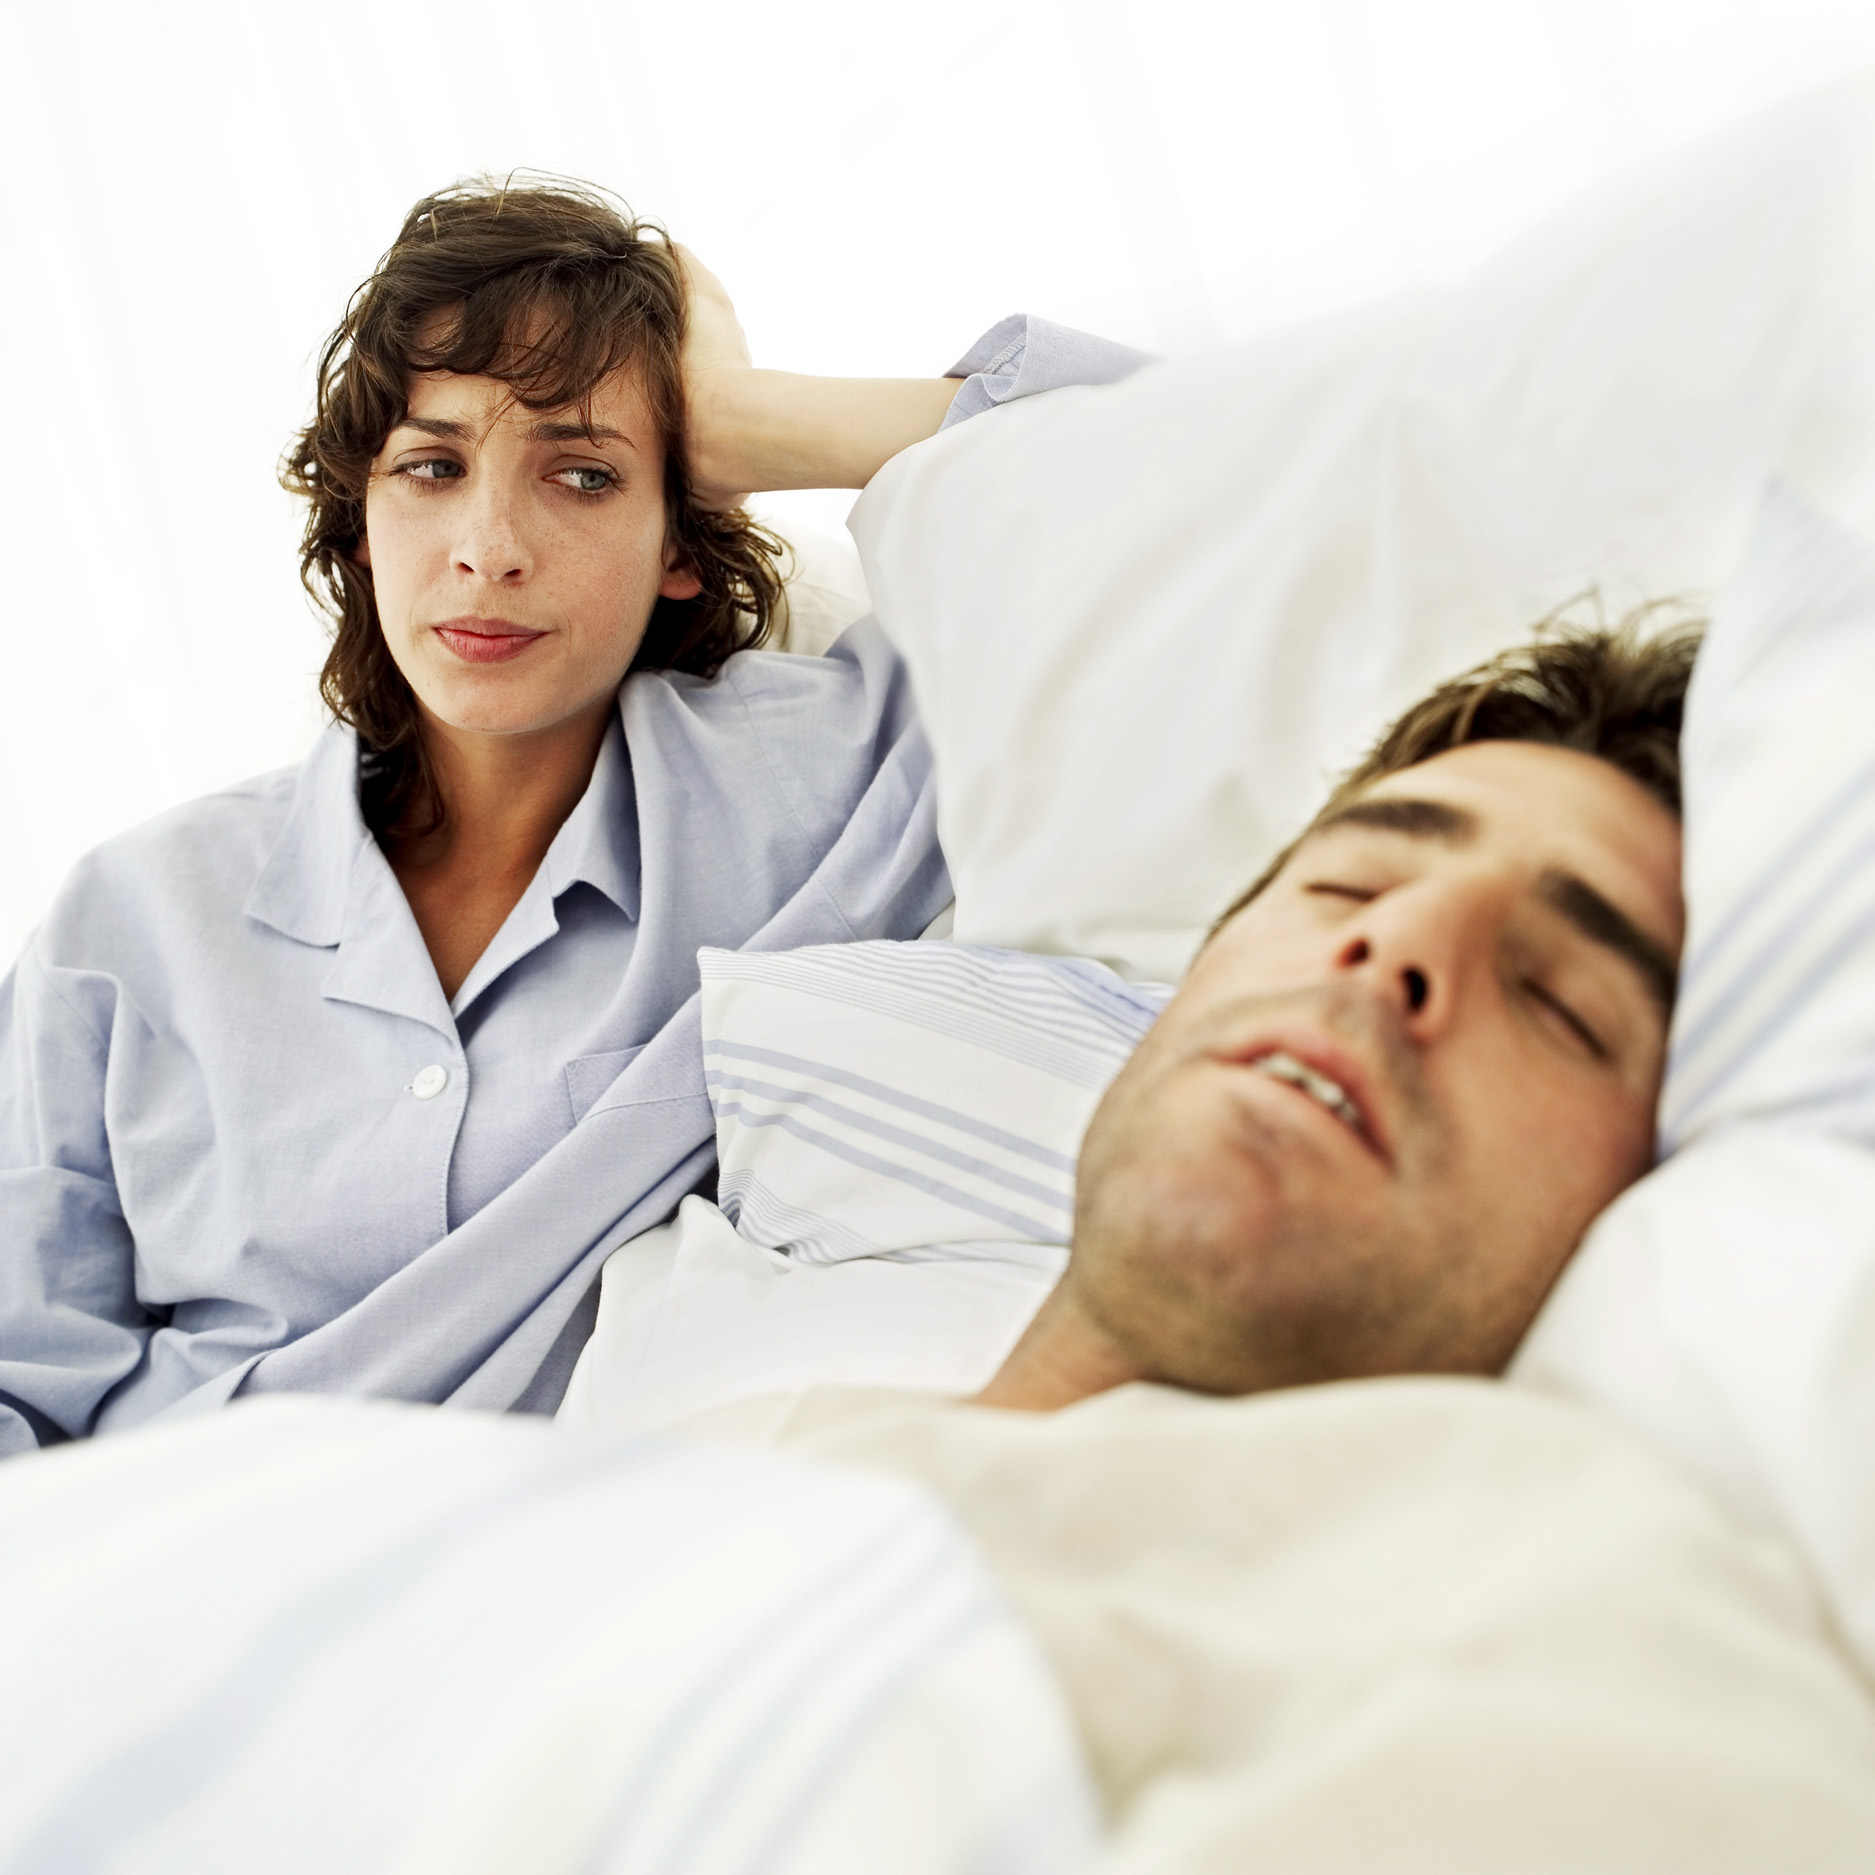 Central sleep apnea and snoring